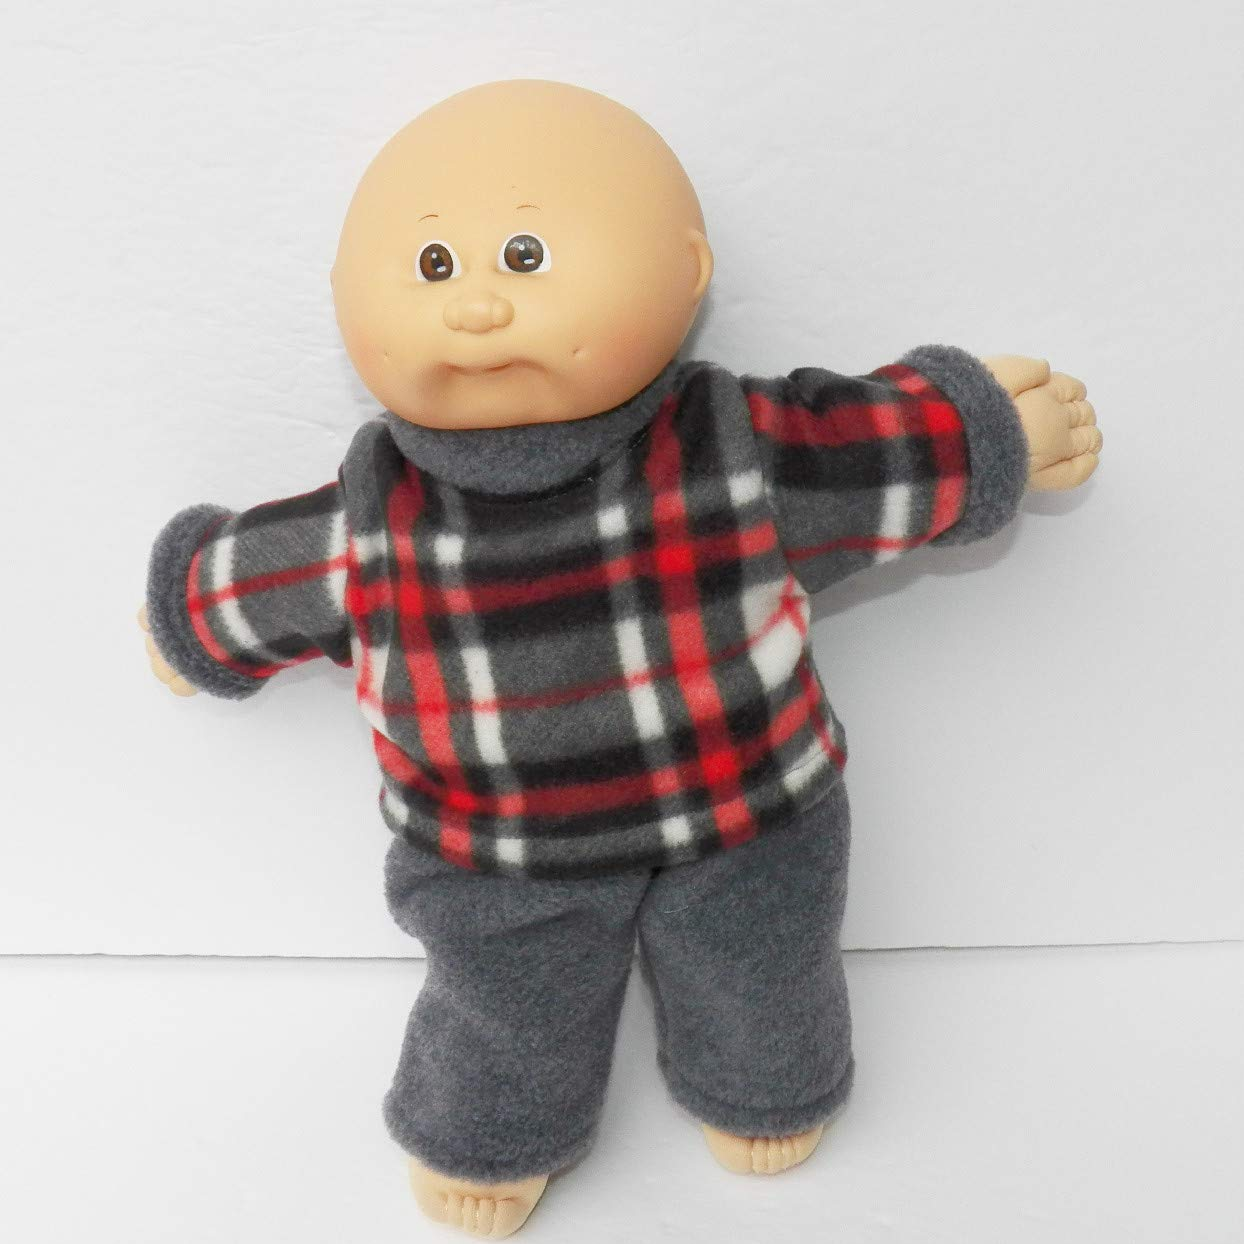 Cabbage Patch Doll Clothes fits 14 Girl or Preemie Red Plaid Check Sweatshirt and Grey Pants